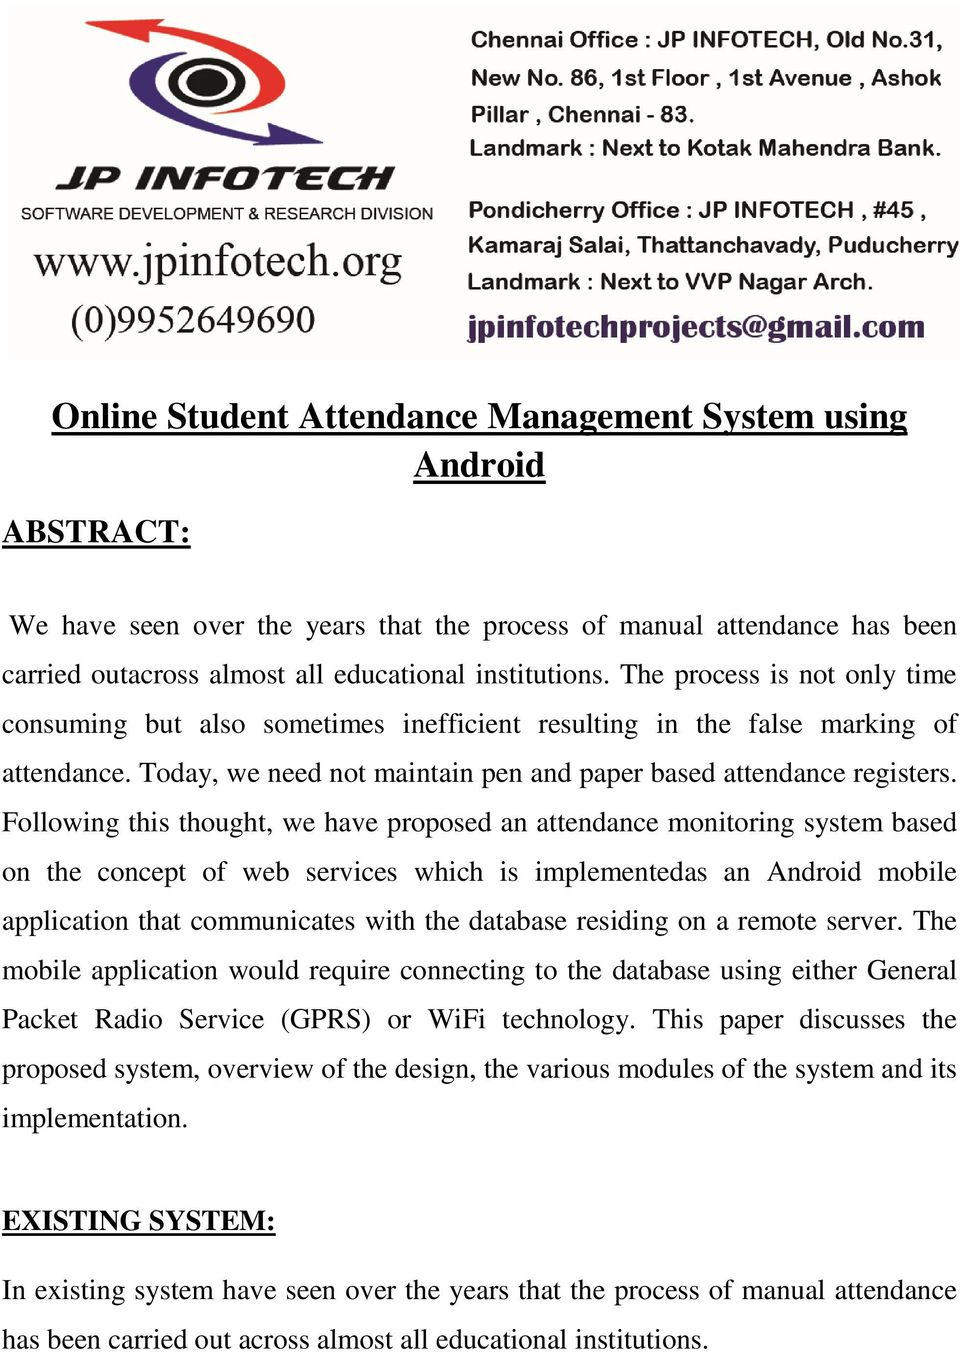 Online Student Attendance Management System using Android - PDF